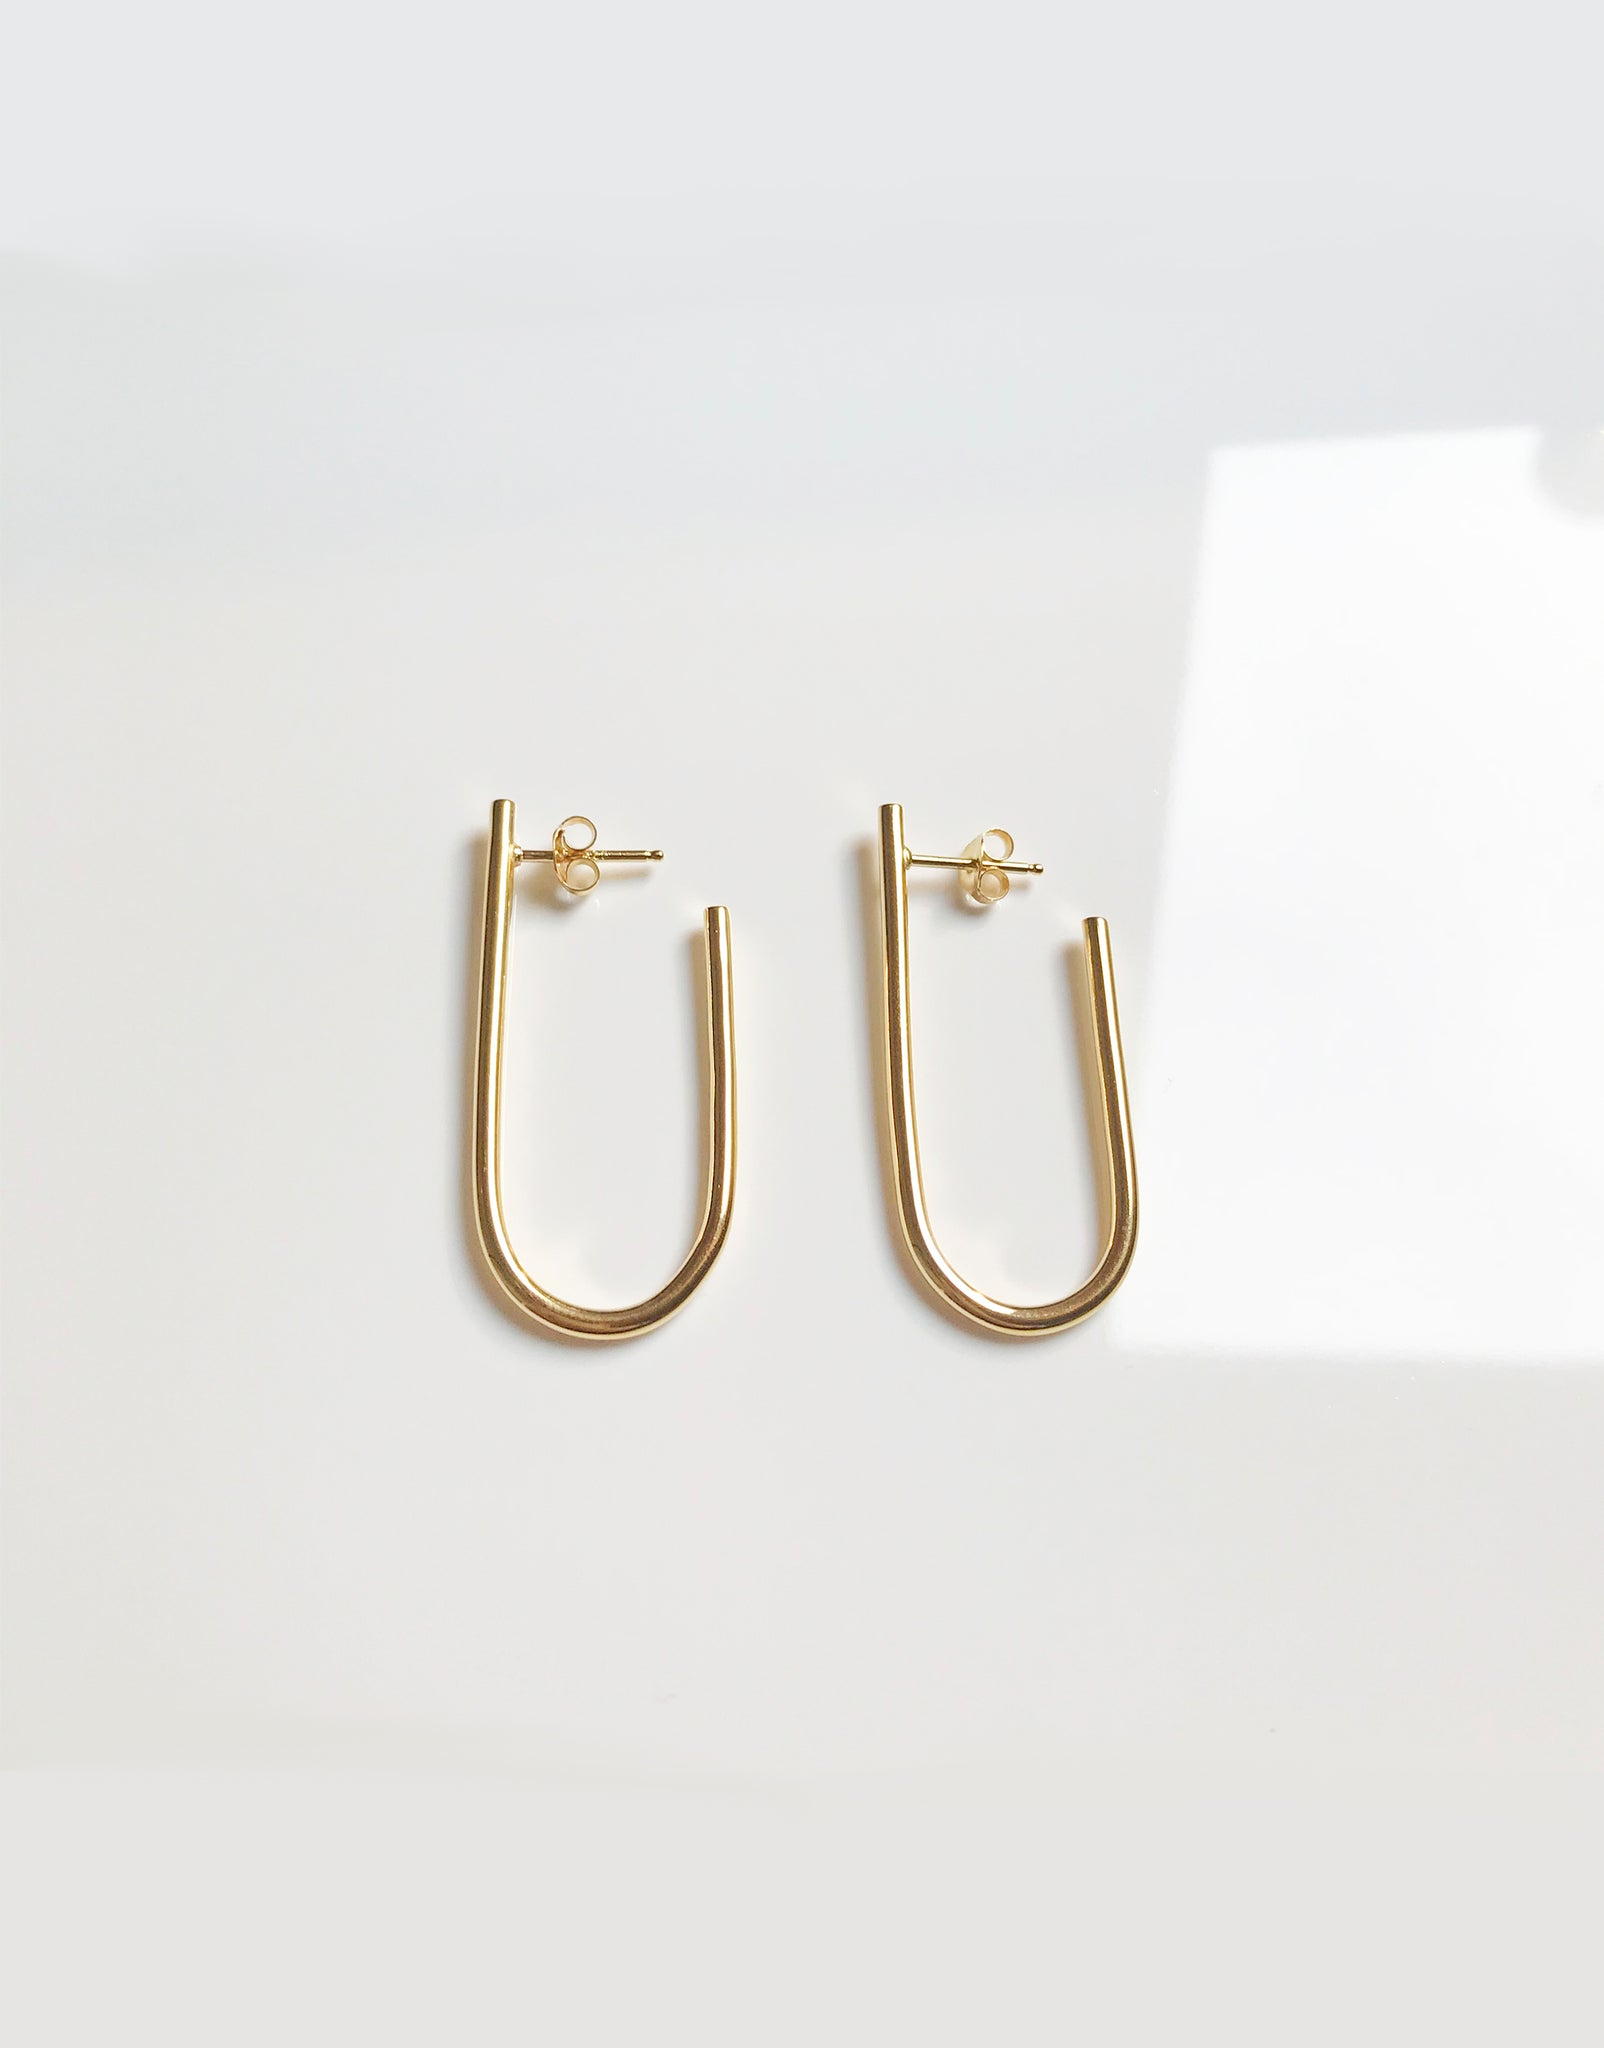 EARRINGS DOUBLE C GOLD-PLATED